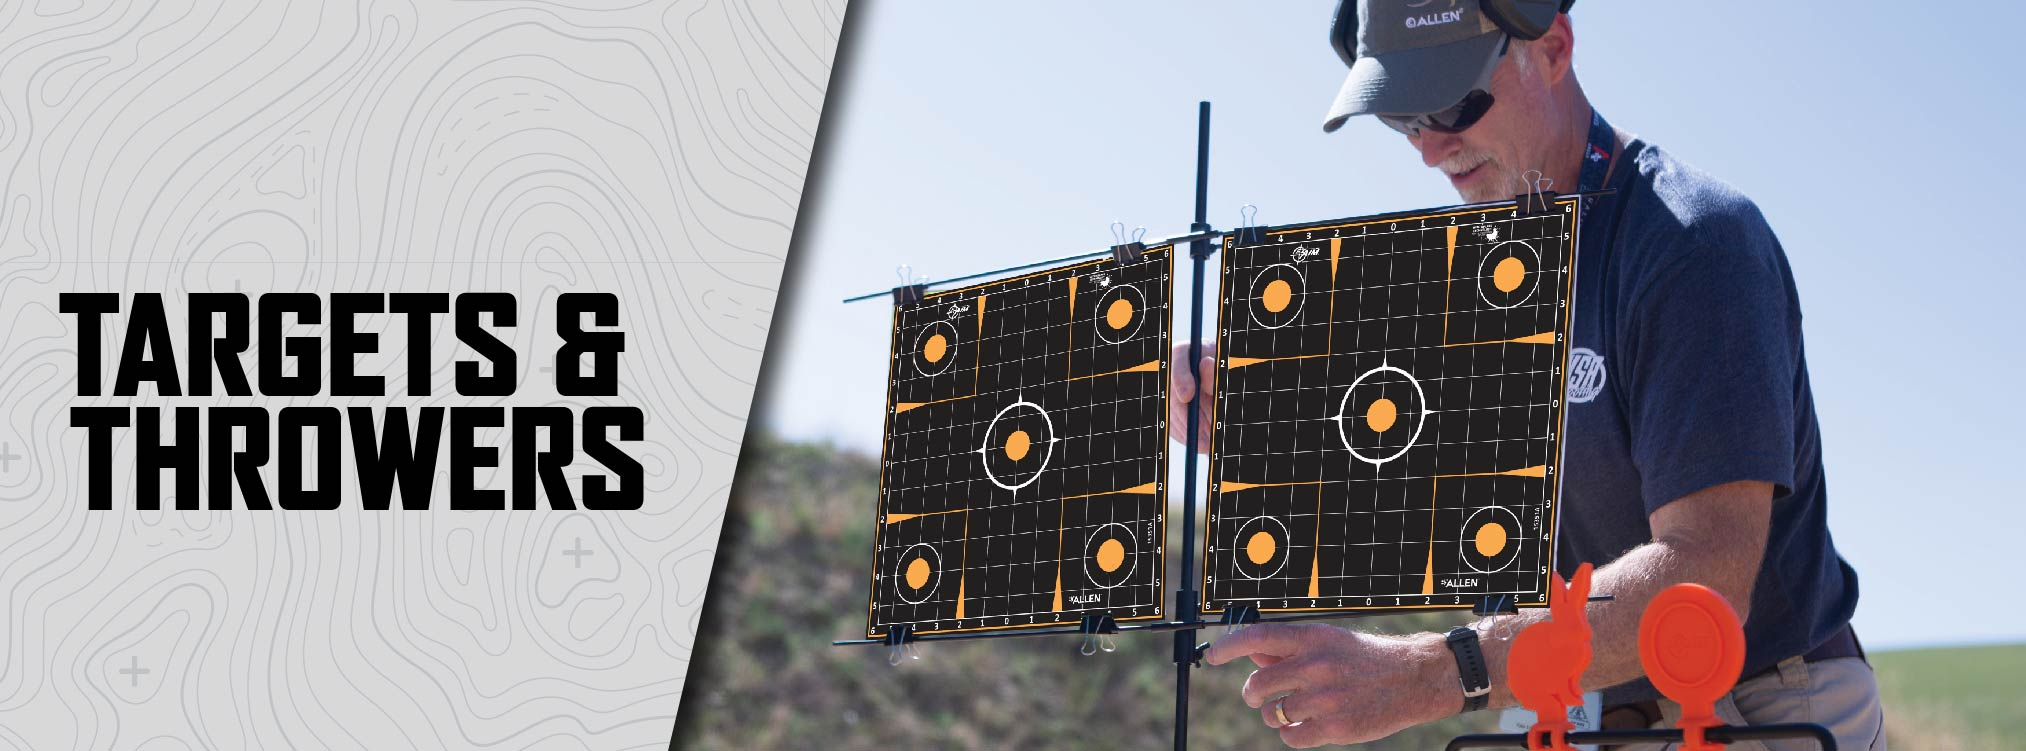 Targets & Throwers